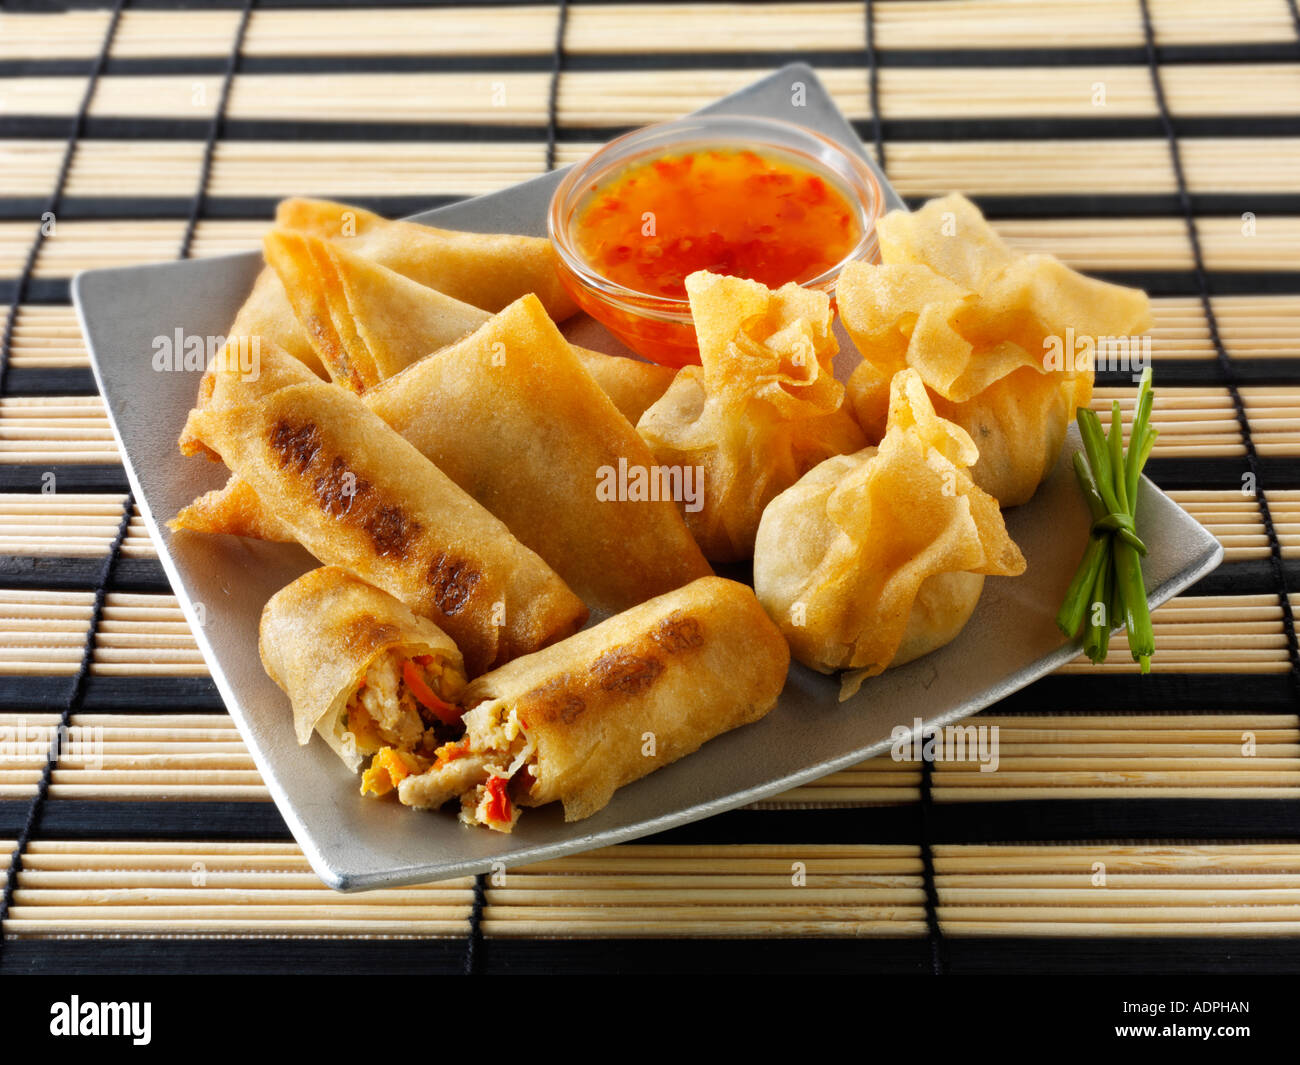 Oriental selection with dim sum spring rolls with chicken vegetables and vegetable samosas with a chilli dipping - Stock Image